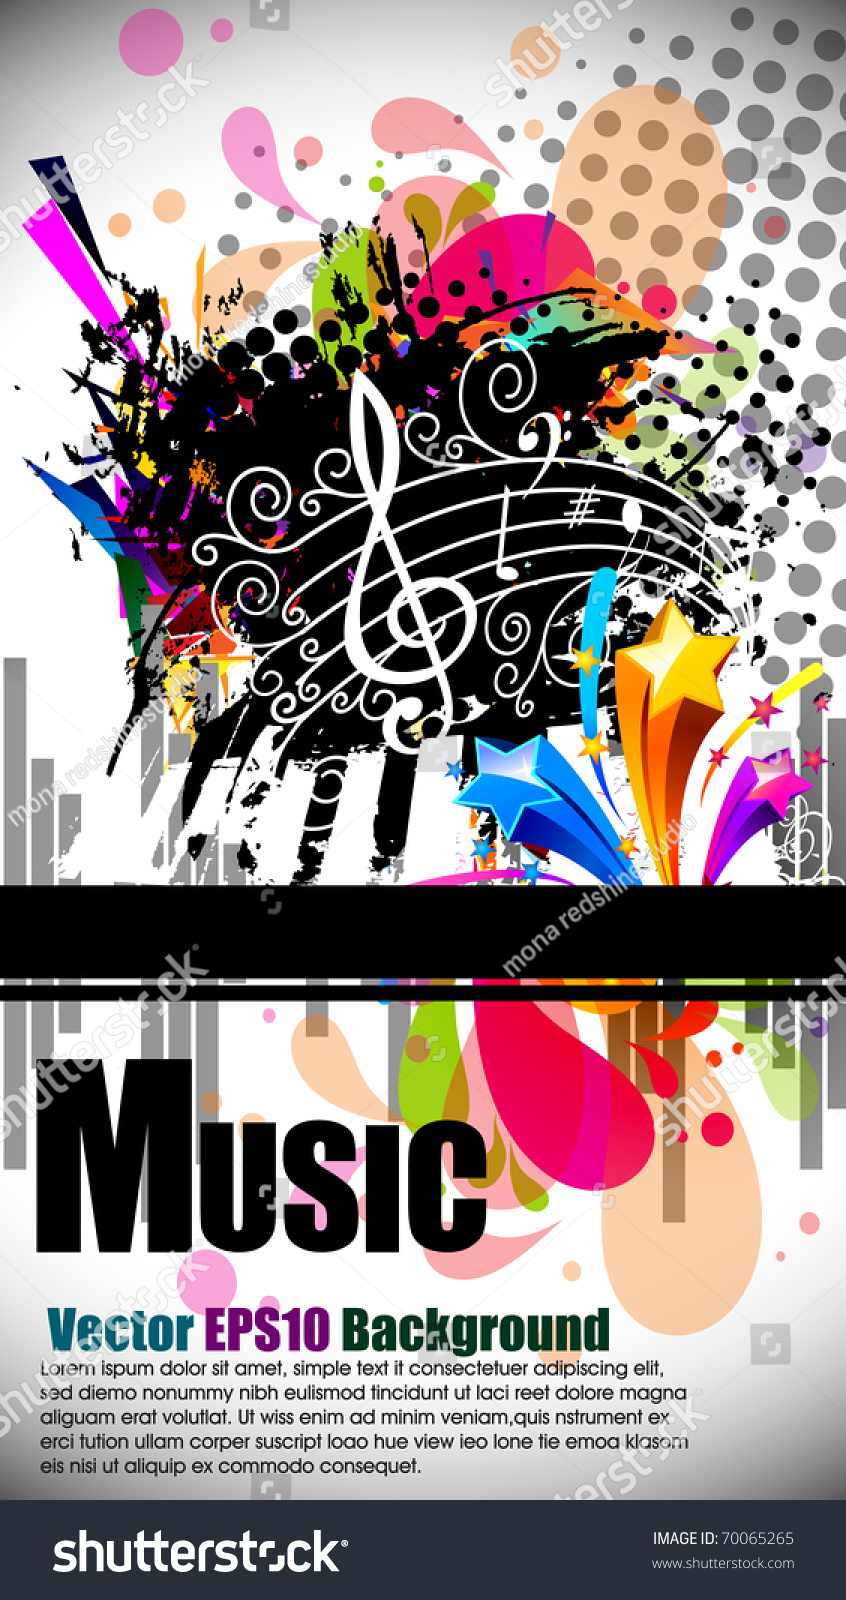 Musical Theme Background With Music Tunes And Disco Ball Editable Illustration